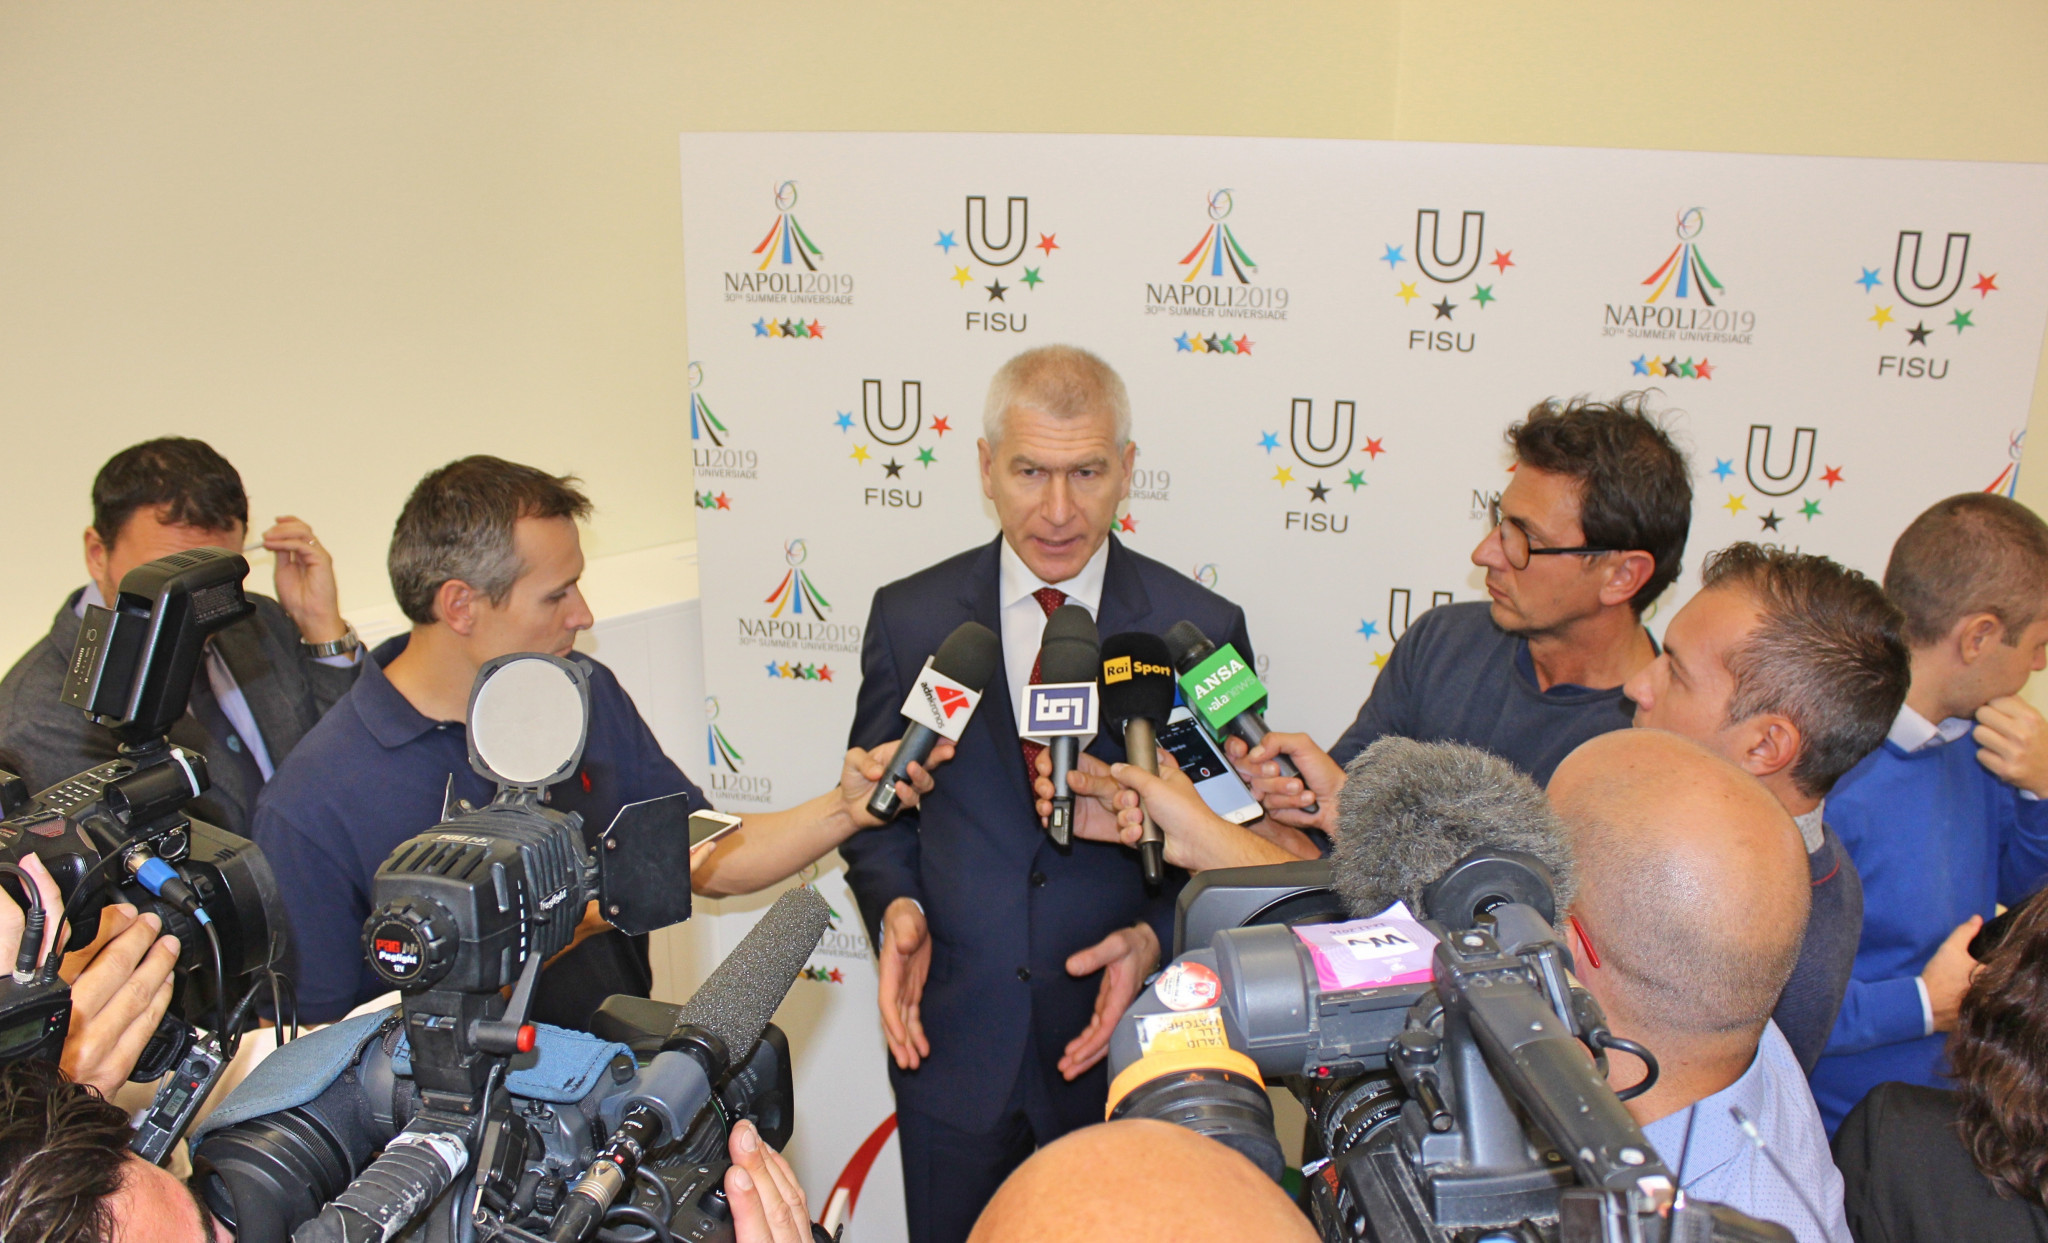 FISU President Oleg Matytsin has called for creative solutions due to the short timeframe in delivering the Universiade ©FISU